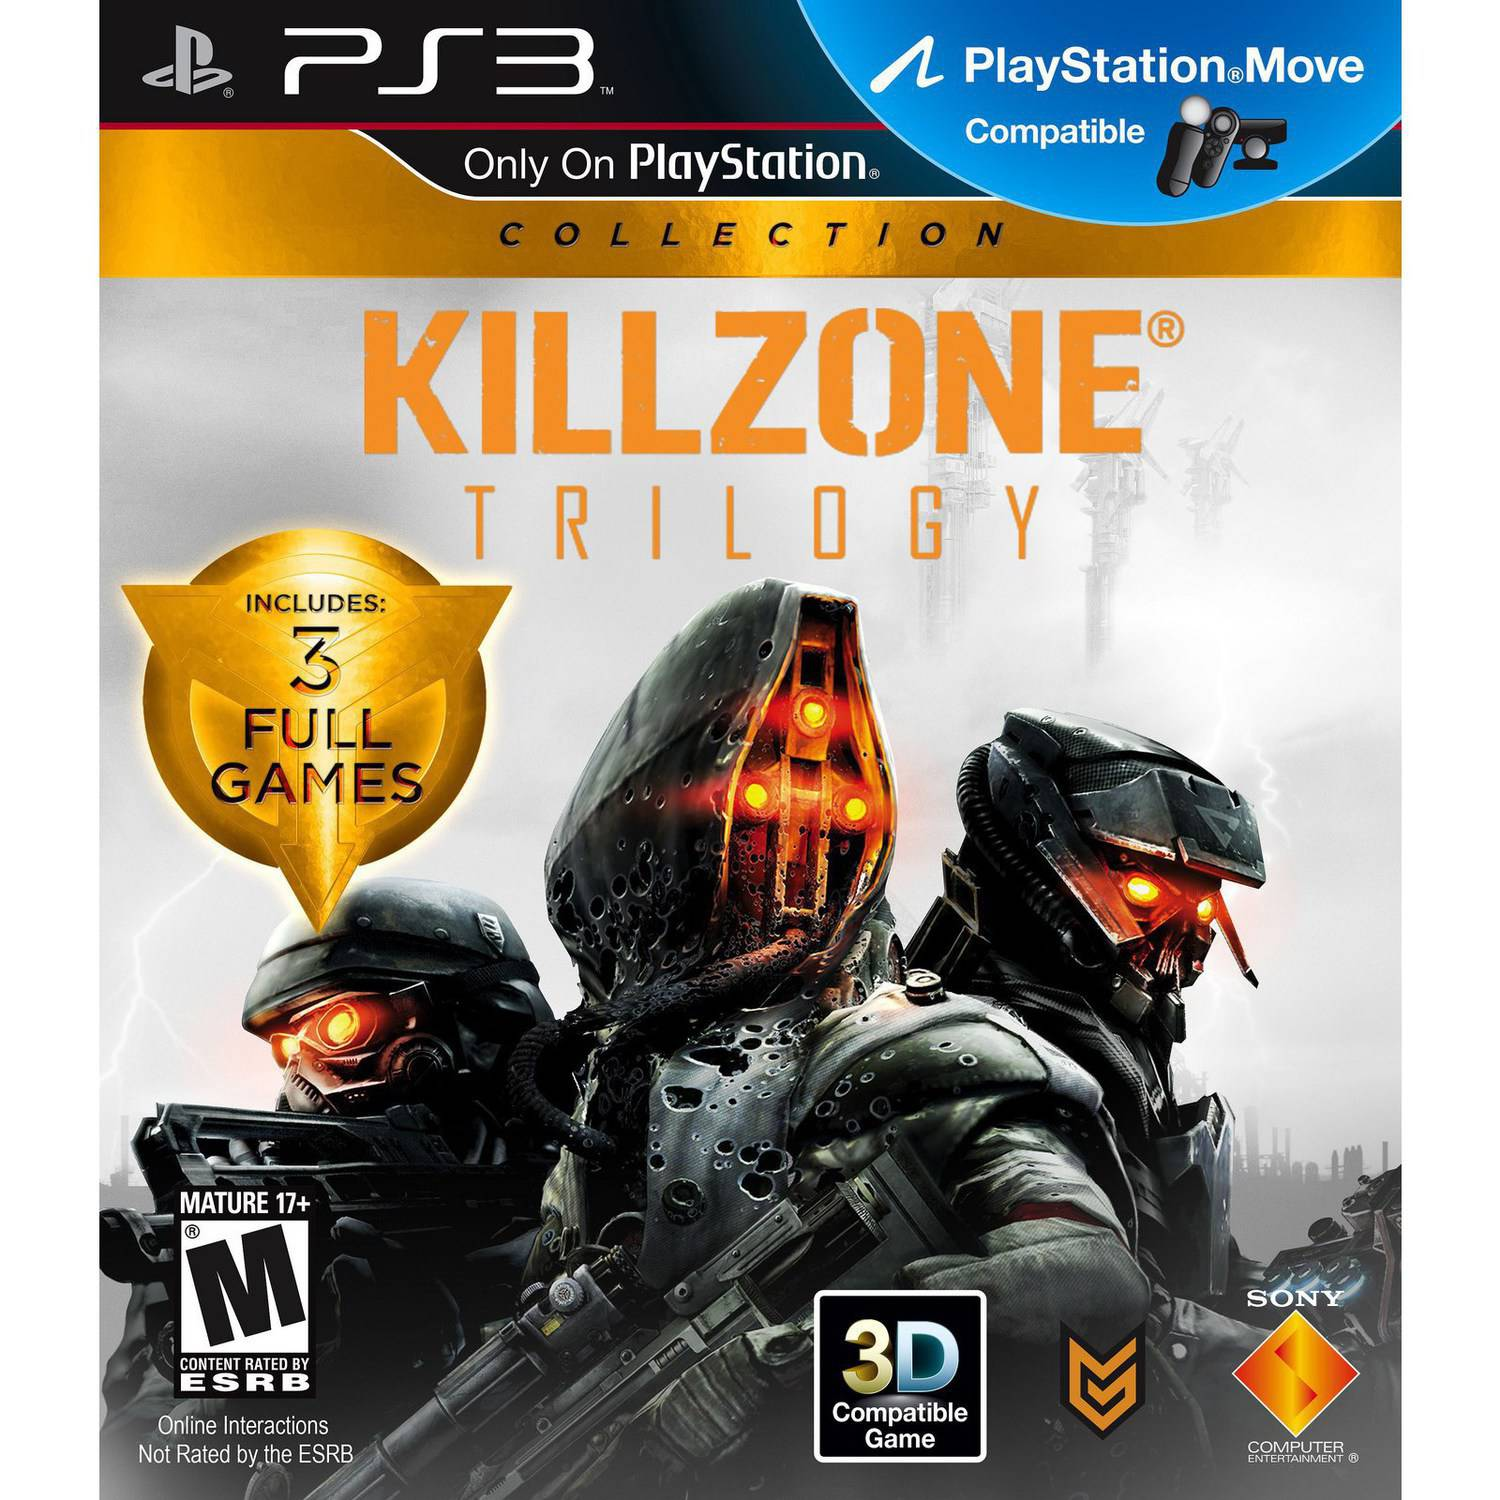 PS3 Killzone Trilogy Collection - 2 Disc Trilogy Collection